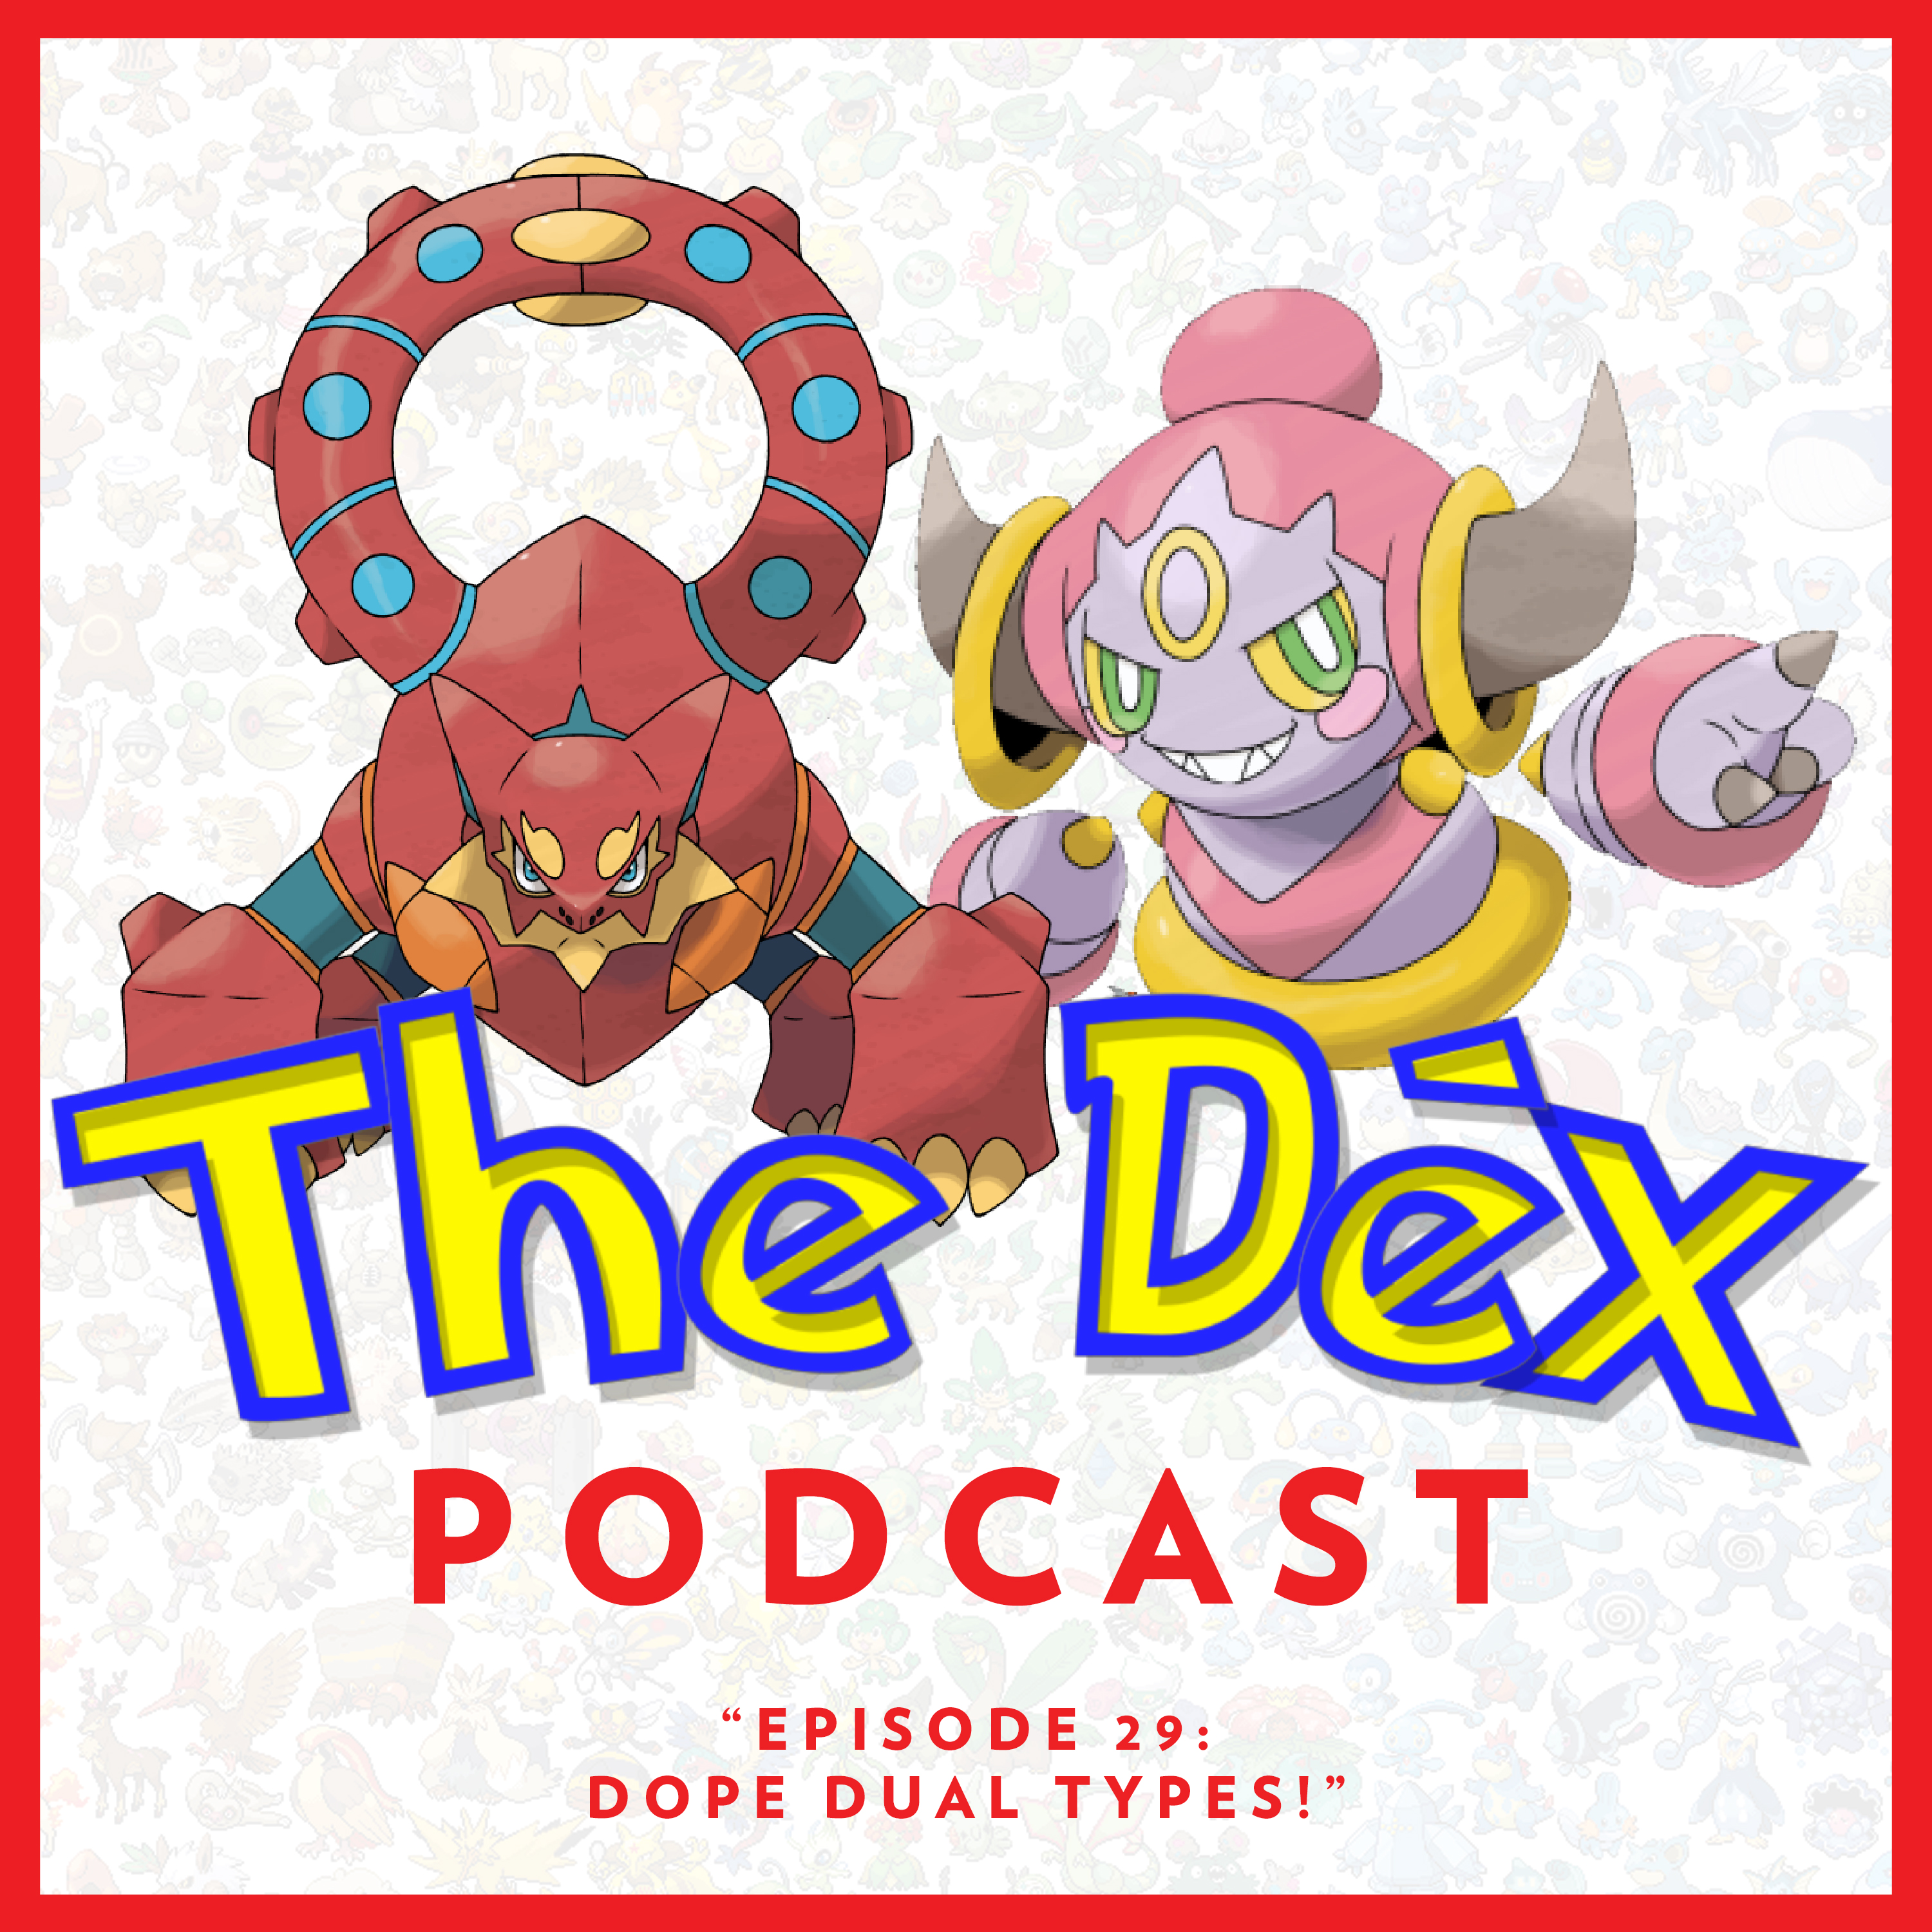 The Dex! Podcast #29: Dope Dual Types!